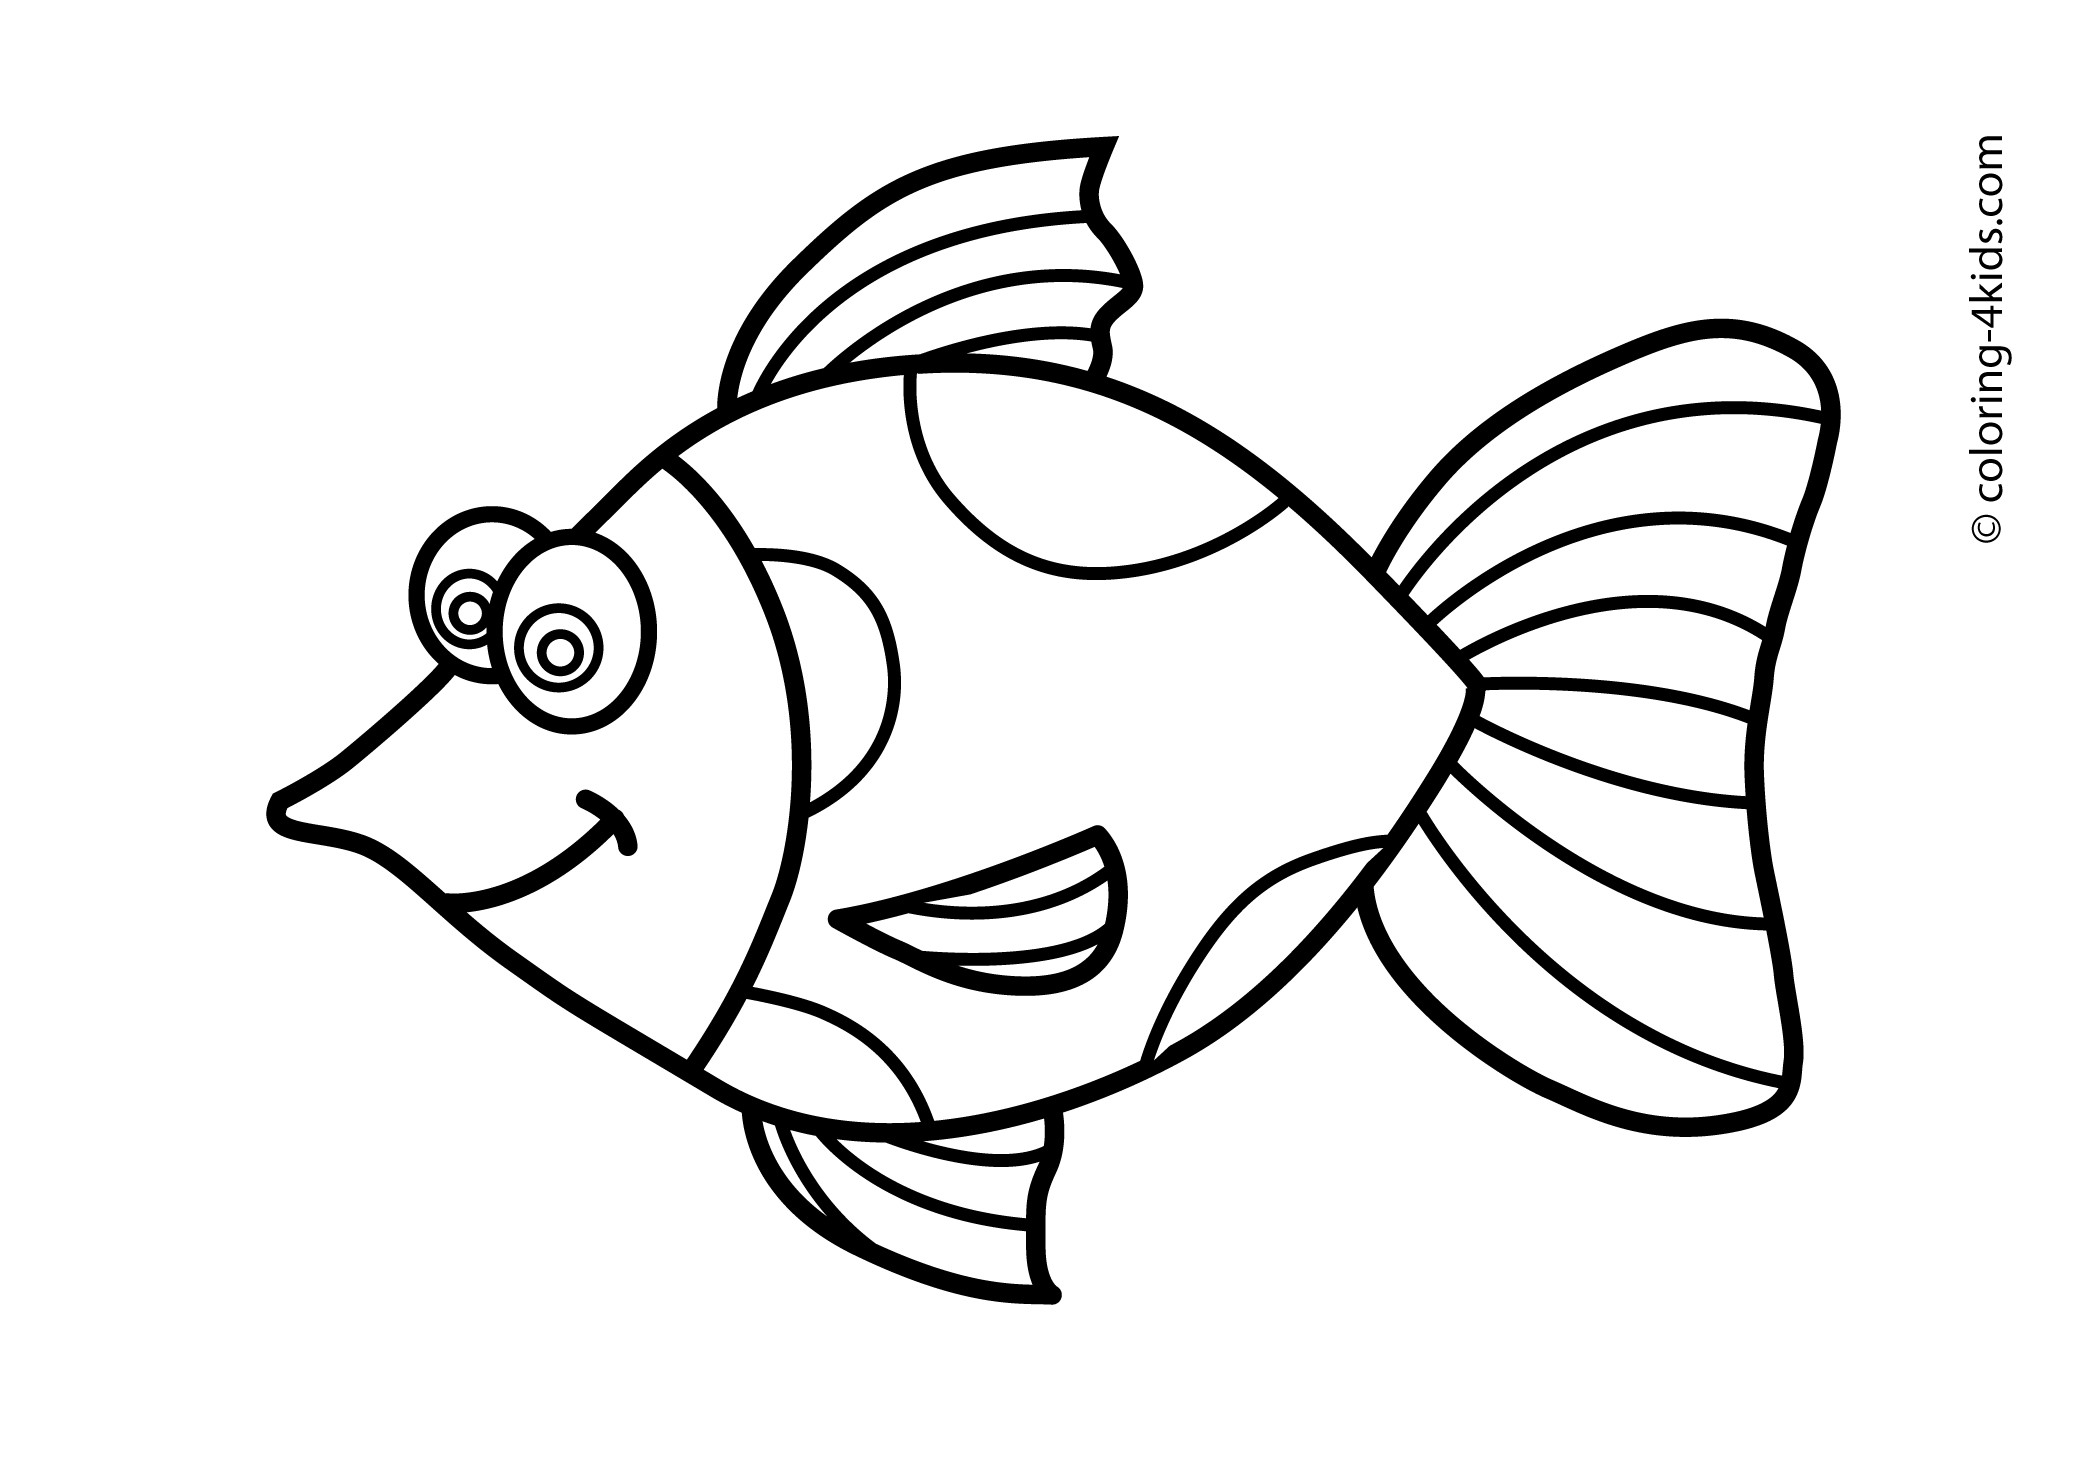 2079x1483 Fish Drawing For Kids